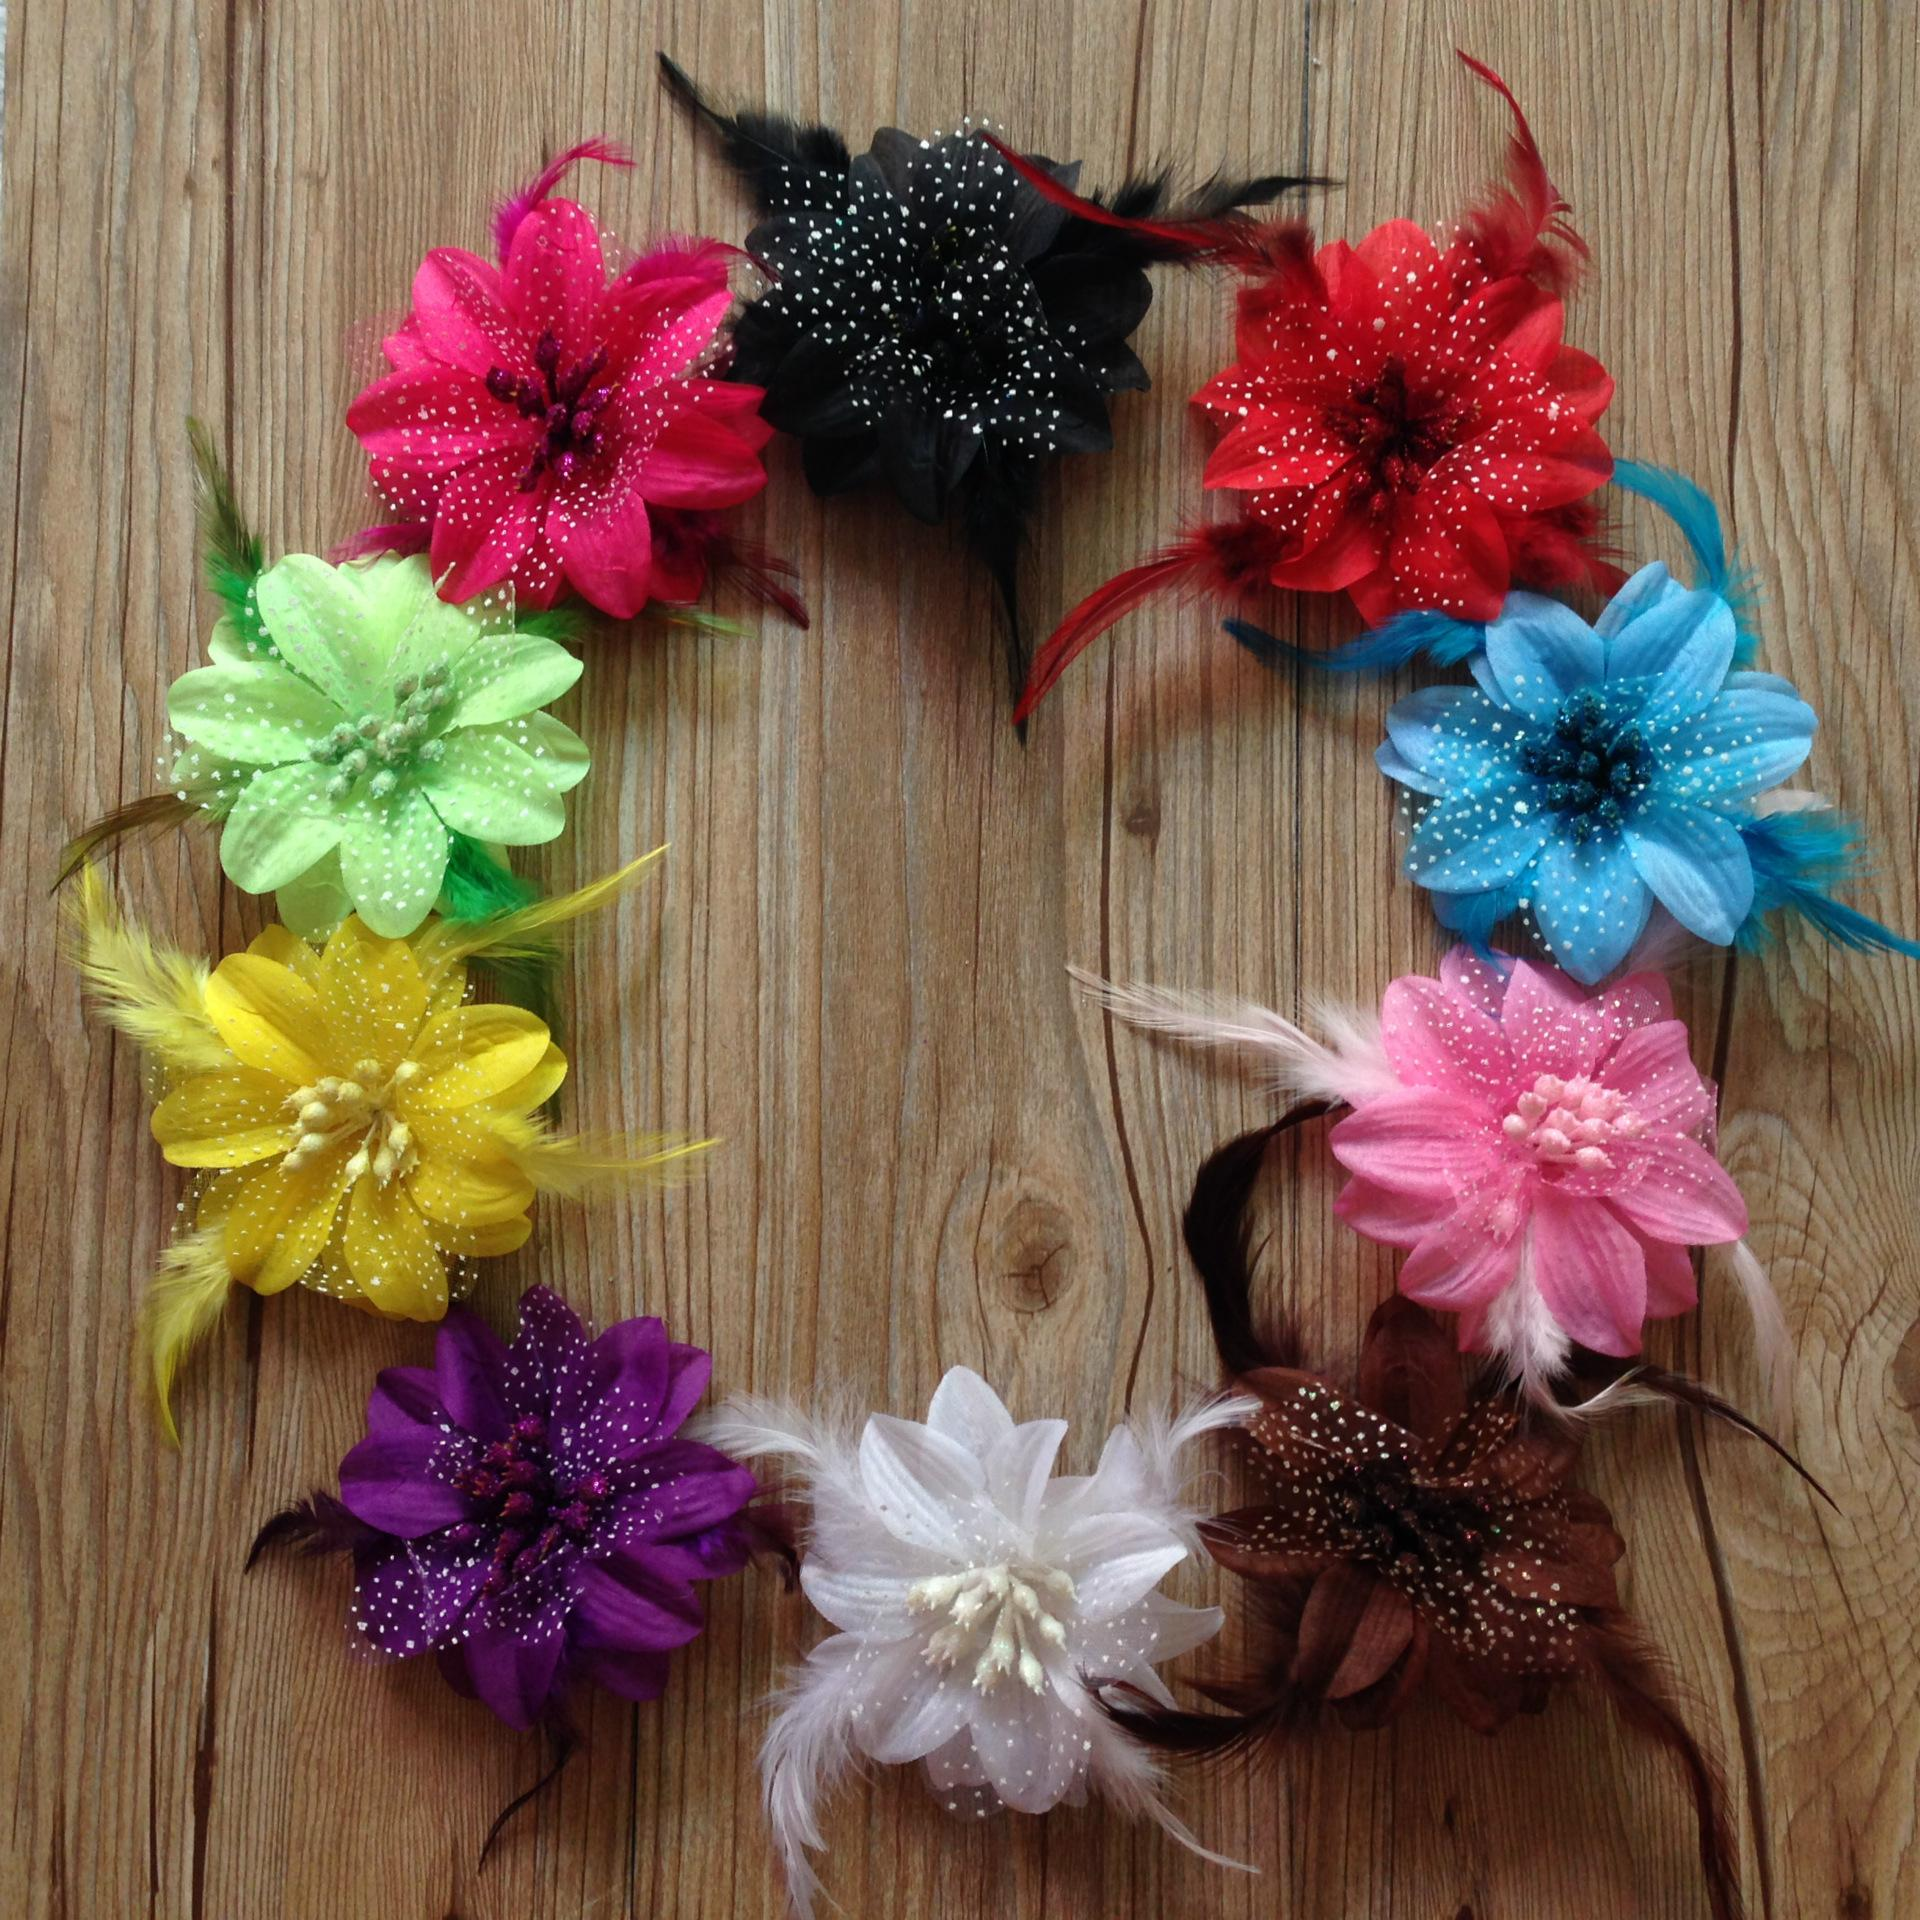 Diy hair accessories for baby girl - Diy Hair Accessories Baby Girls Feather Flower Hair Clips Handmade Fabric Flowers For Headband With Clips